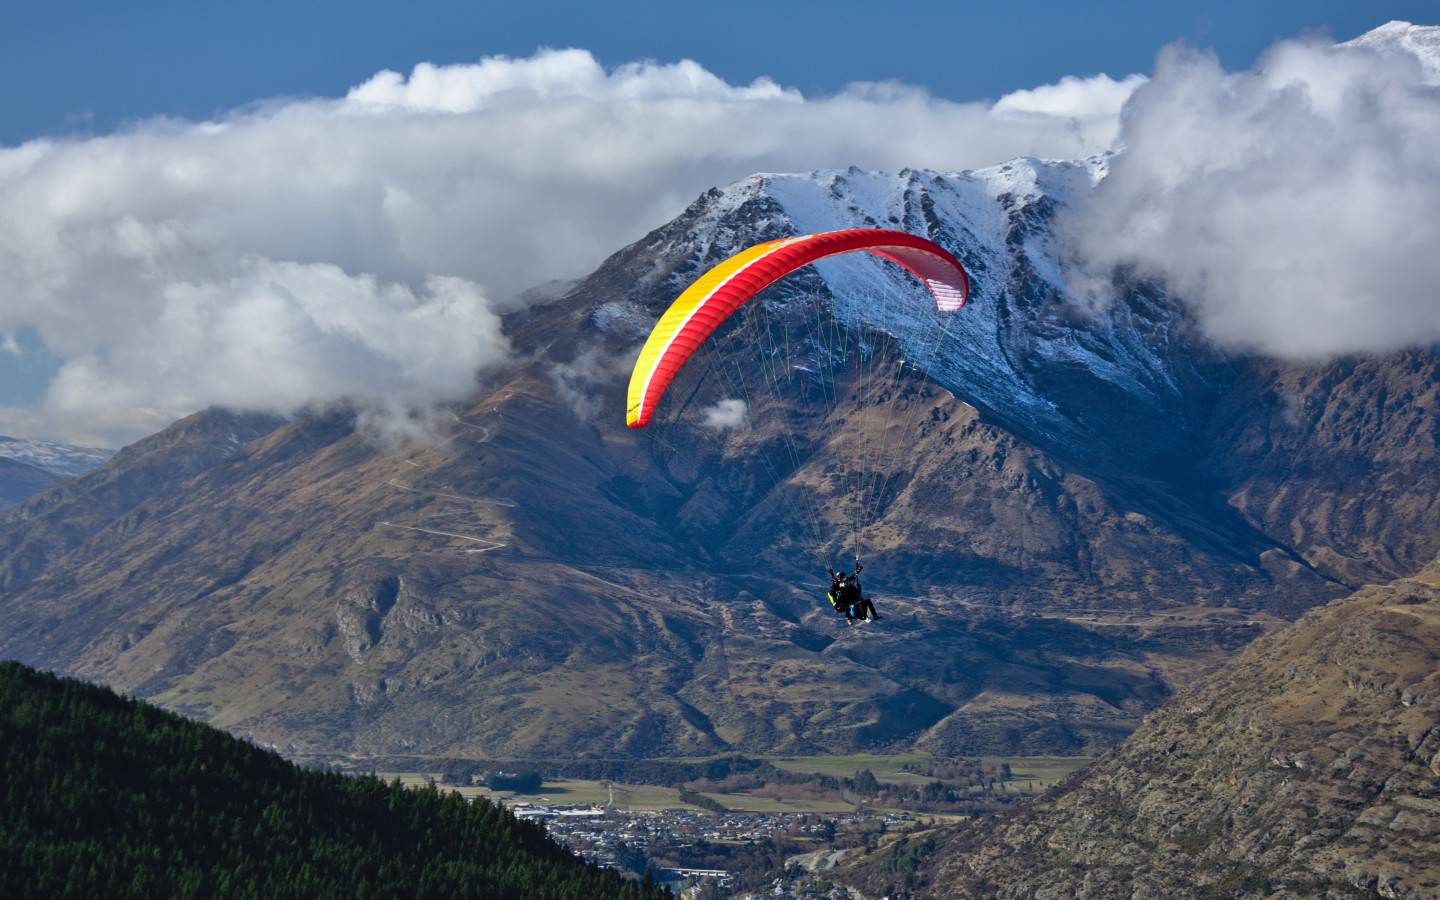 Paraglider up in the sky wallpaper 1440x900